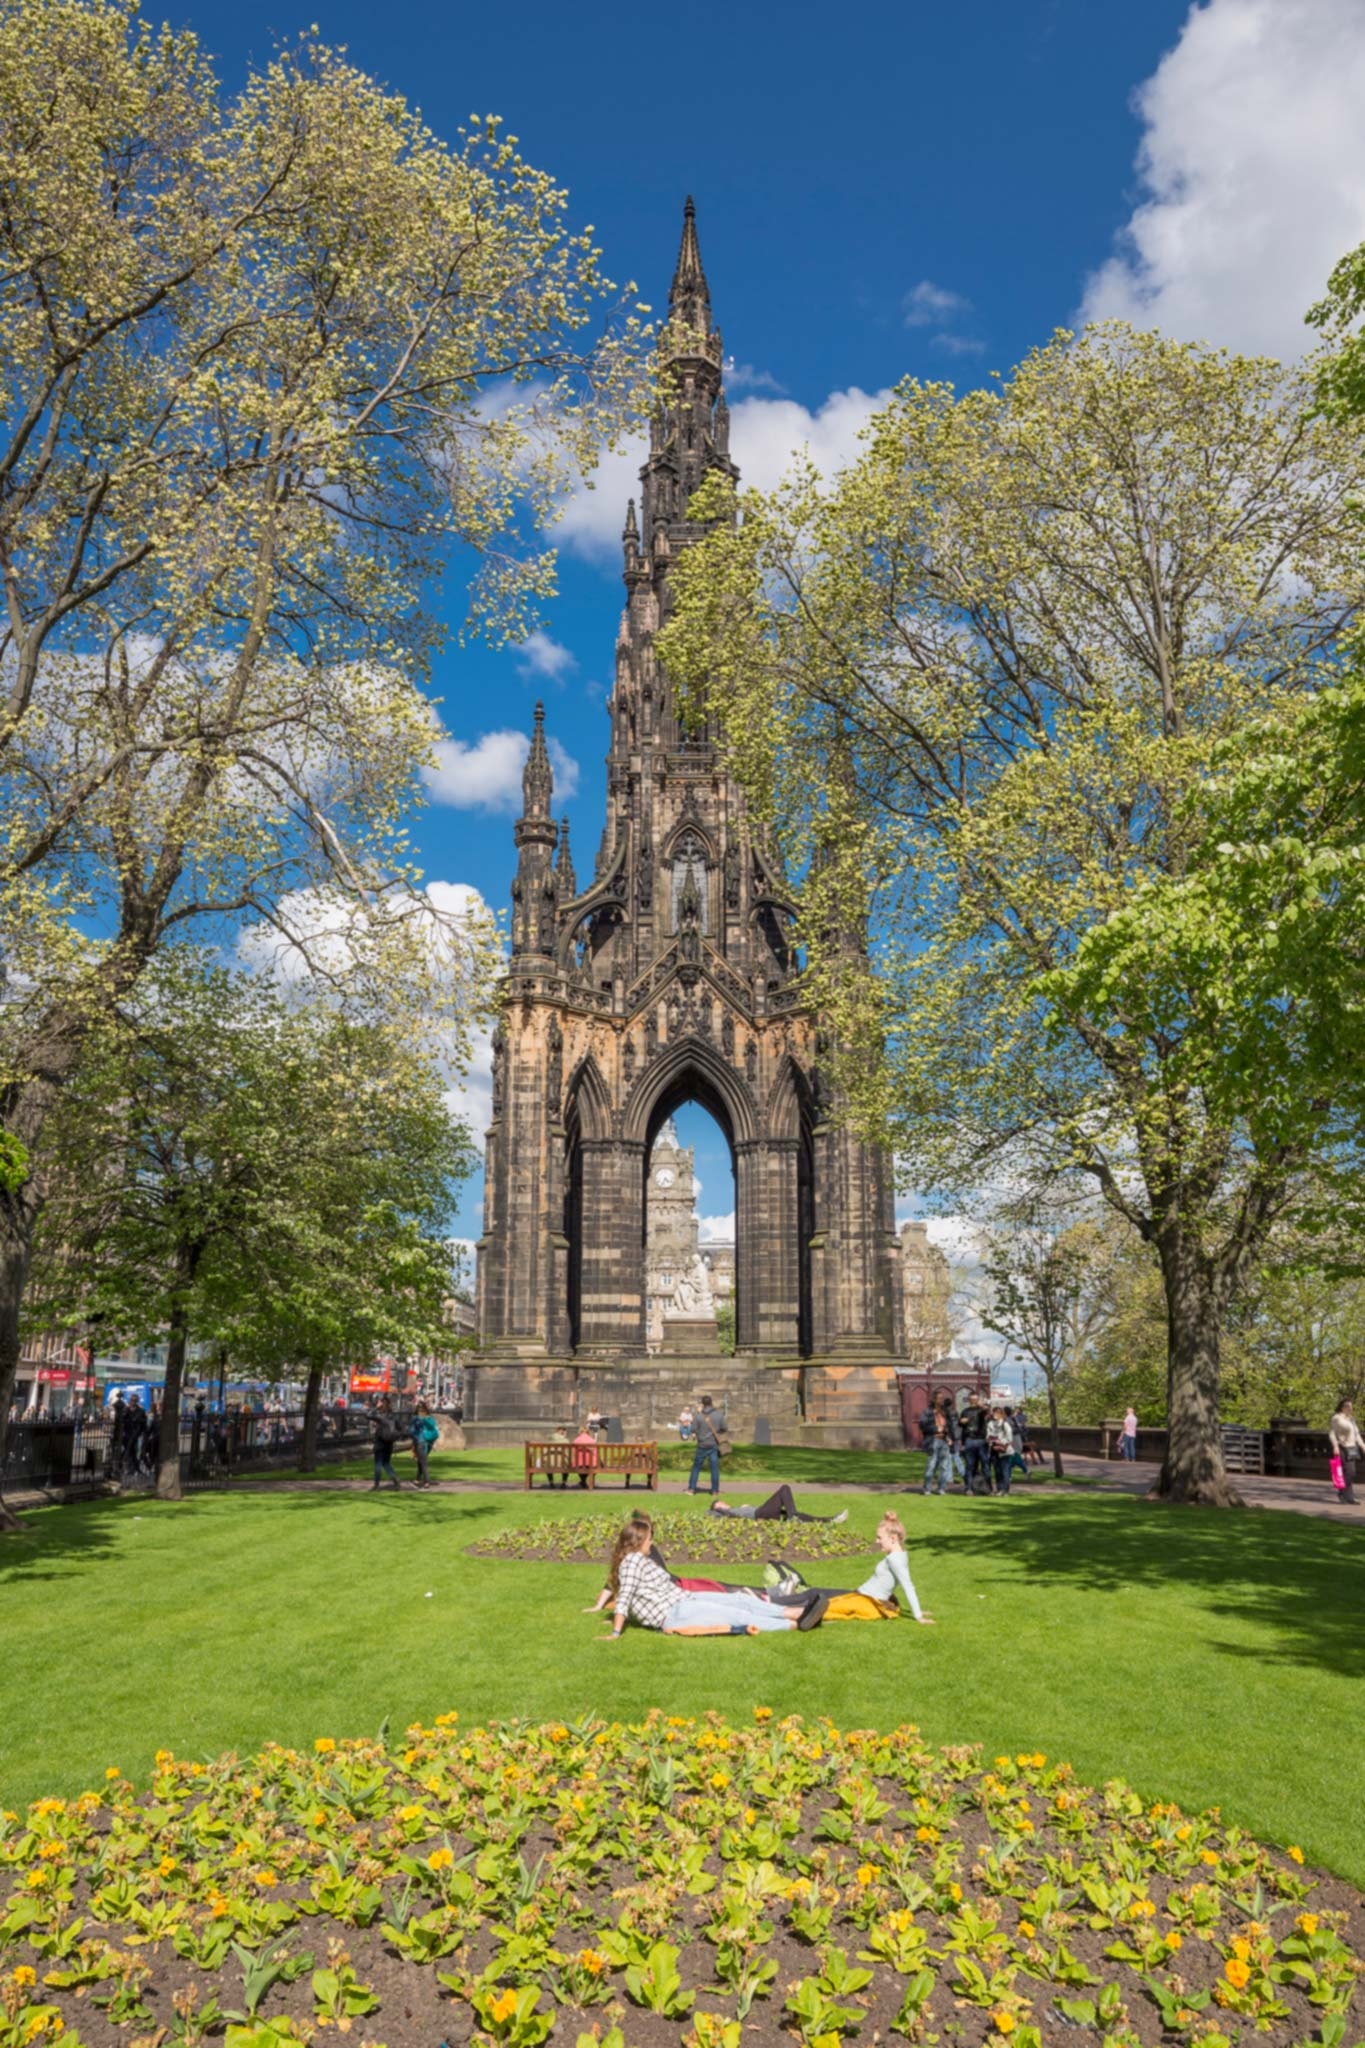 People sunbathe on the lawn in Princes Street Gardens, with Scott Monument in the background